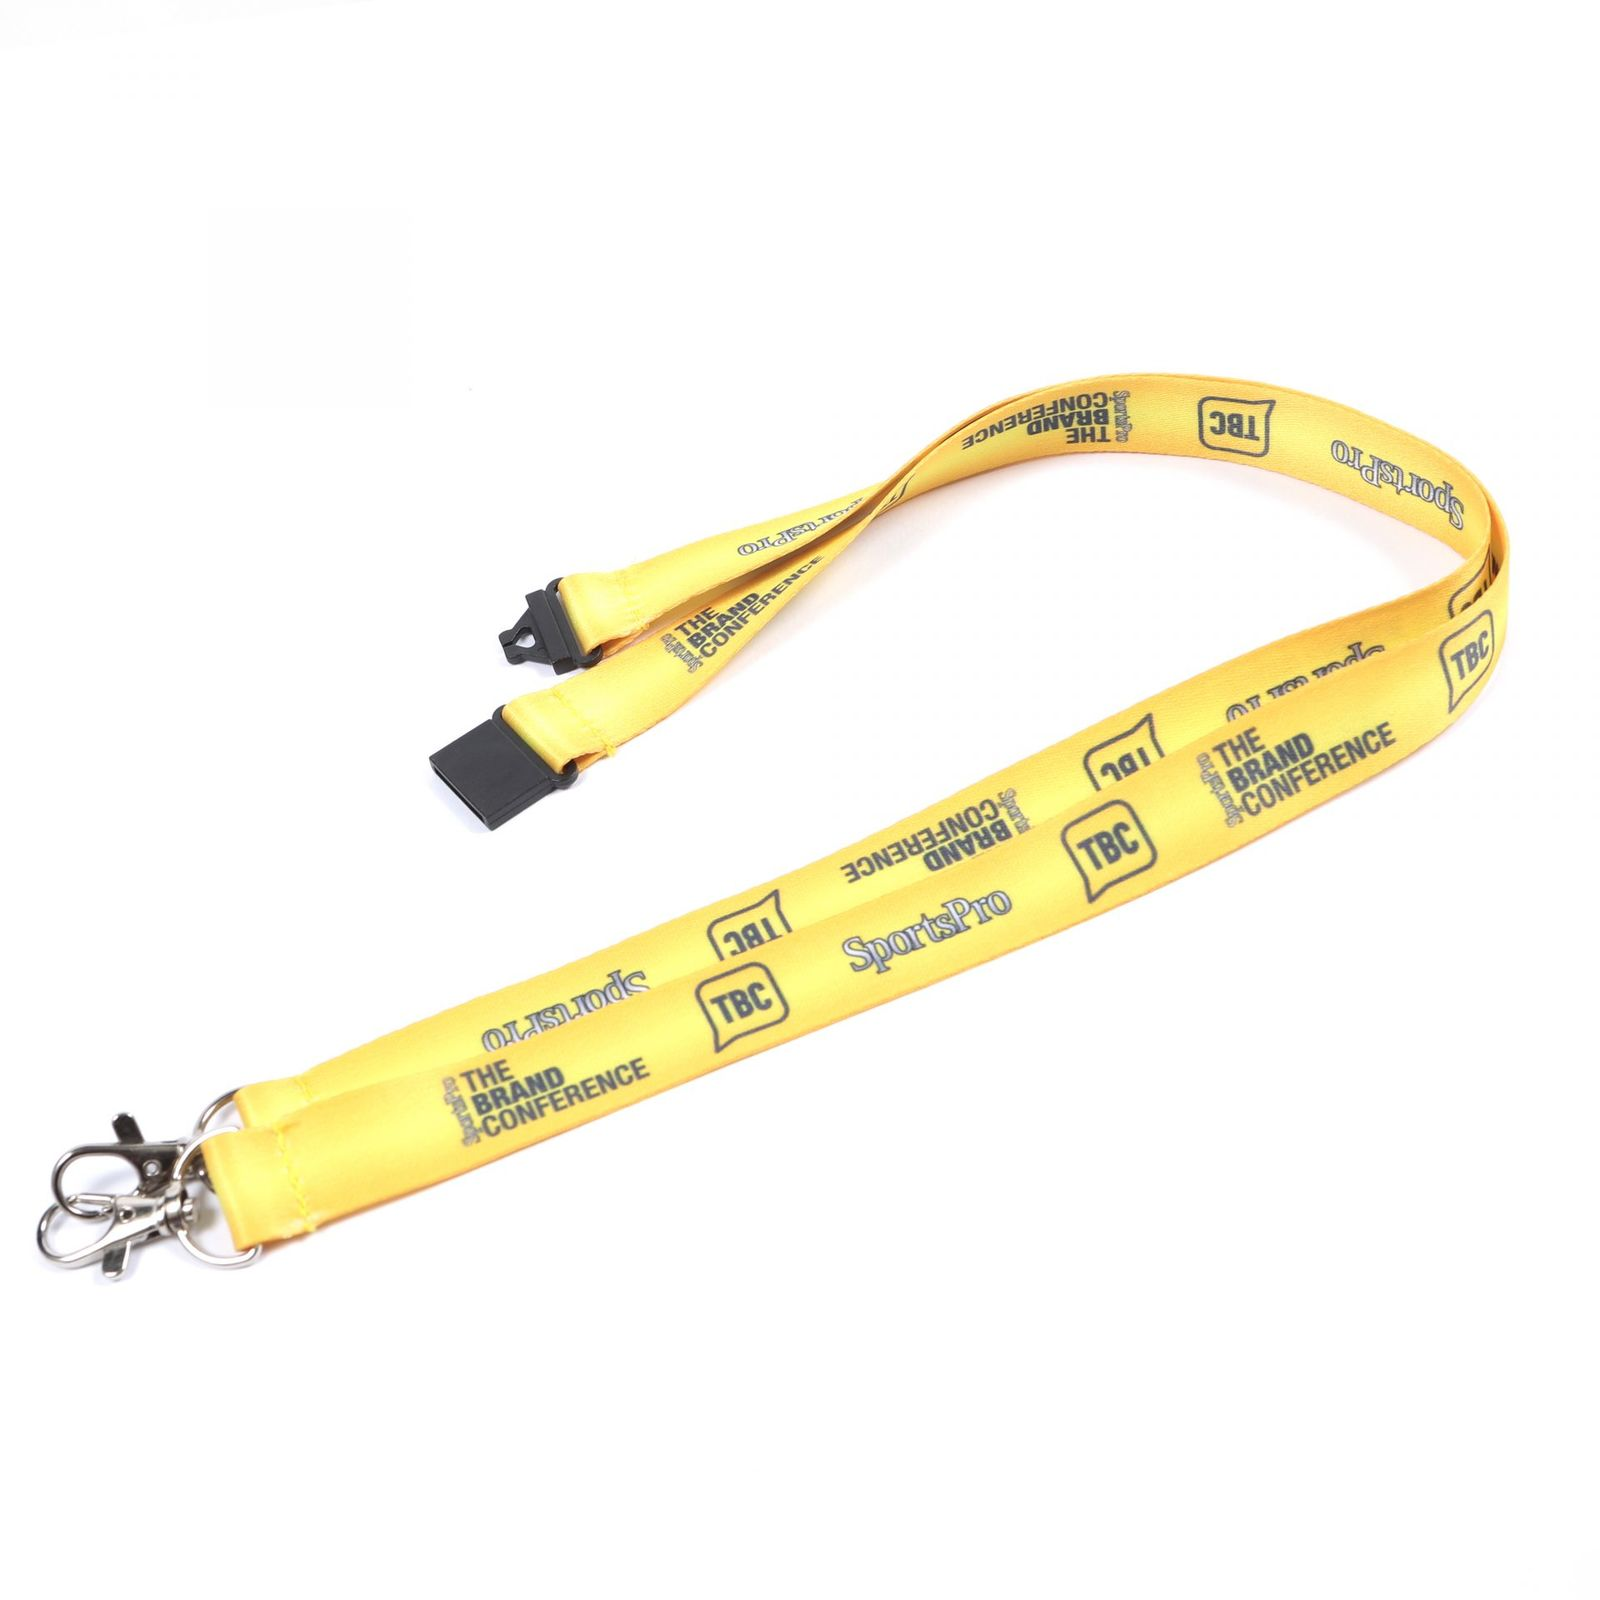 Buy Deluxe Full Colour Double Ended Printed Lanyards (Express) on Lanyards Direct Today!